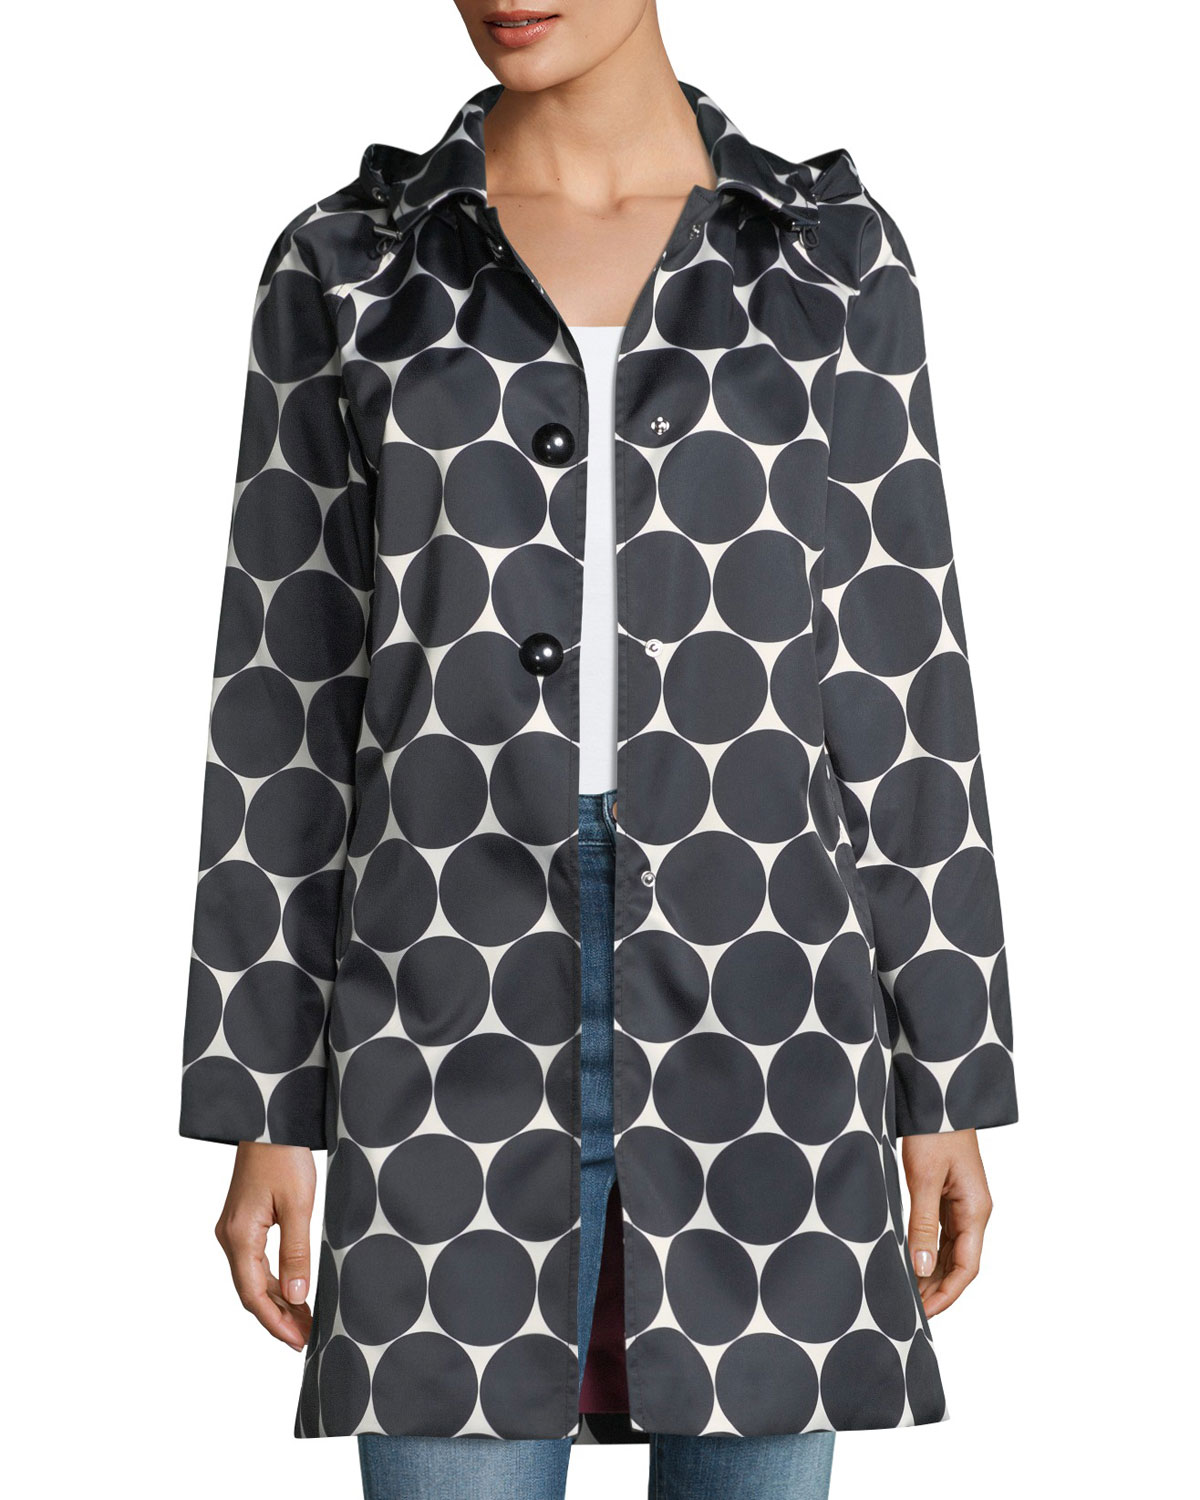 Front Rain Dot Hooded Neiman Spade York Coat Kate New Marcus Button  1nqPHwxXfa c9e0ca9941d